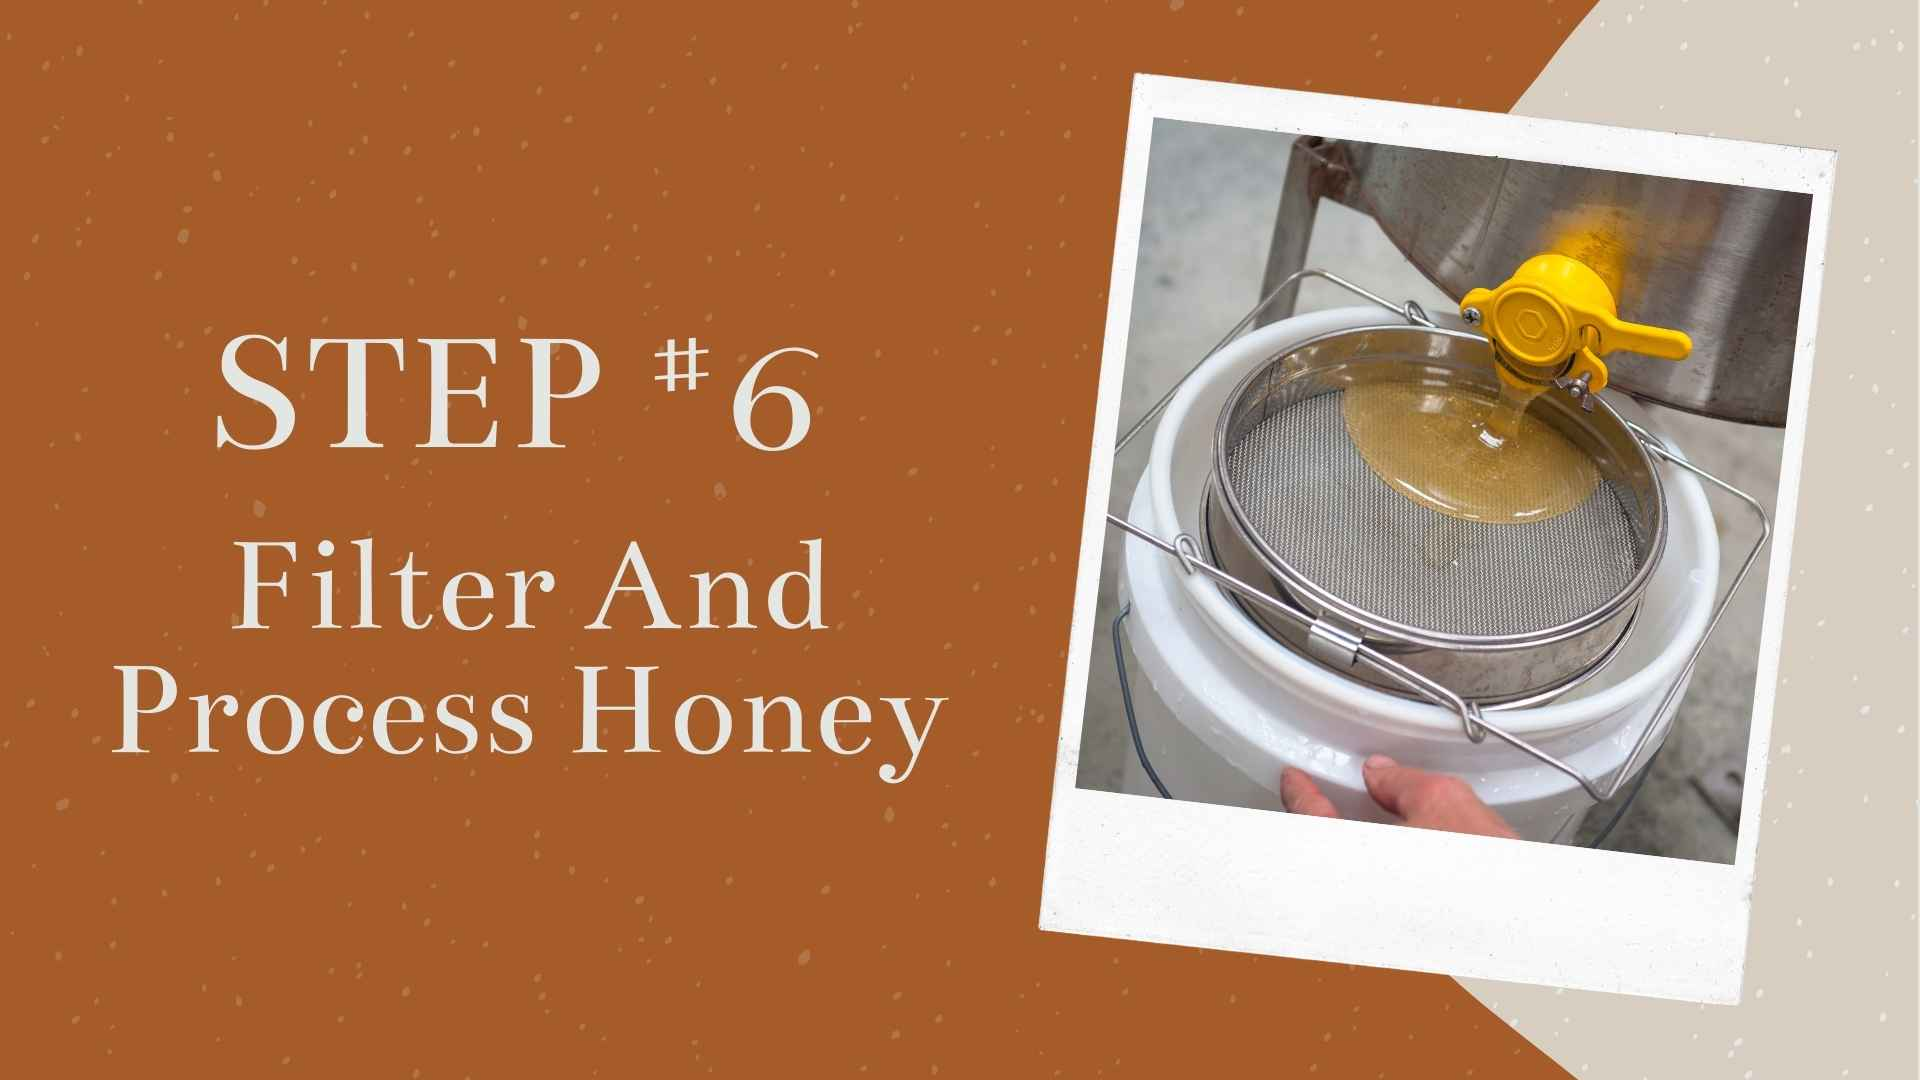 Step #6 Filtering And Processing The Honey